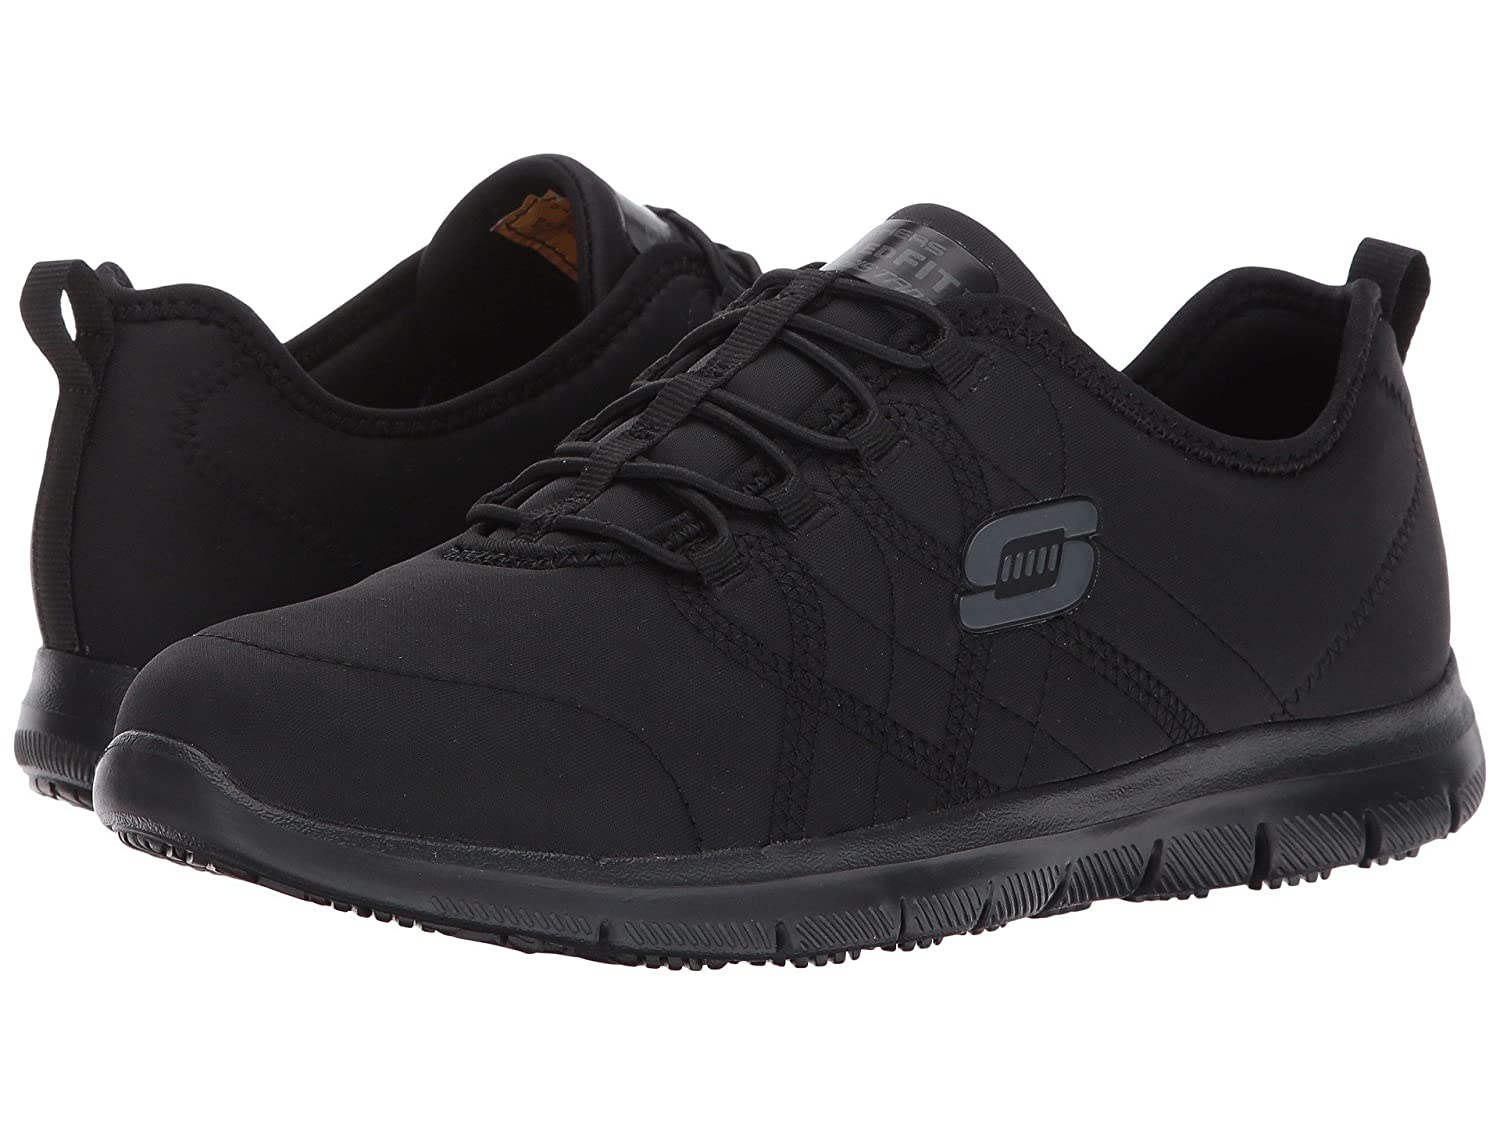 (スケッチャーズ) SKECHERS レディースワークシューズナースシューズ靴 Dighton Bricelyn [並行輸入品] B07FRSKPXC 11 (28cm) B Medium|Black Synthetic/Leather Black Synthetic/Leather 11 (28cm) B Medium